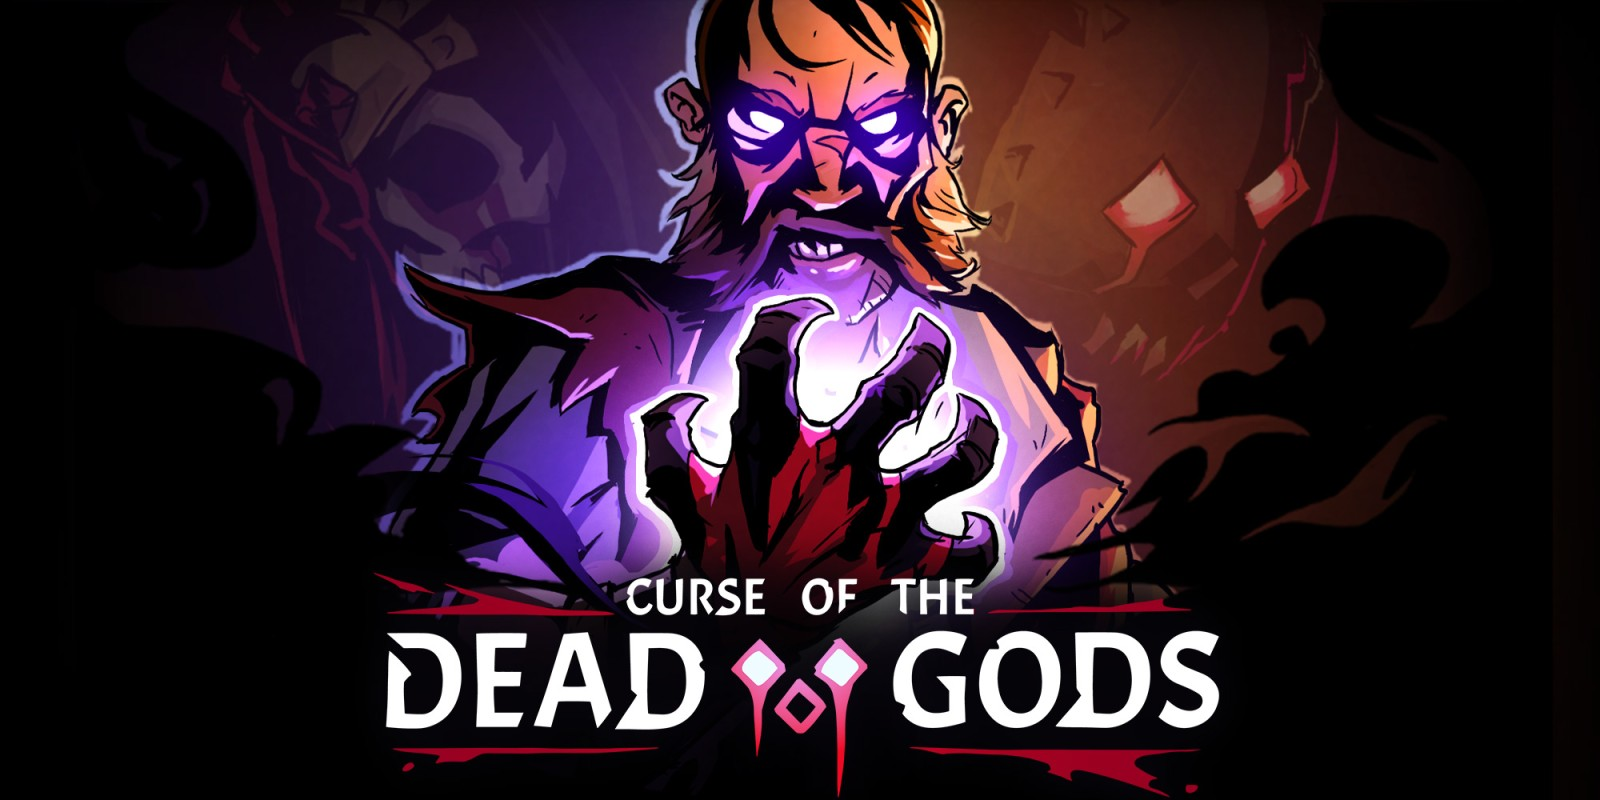 H2x1_NSwitchDS_CurseOfTheDeadGods_image1600w